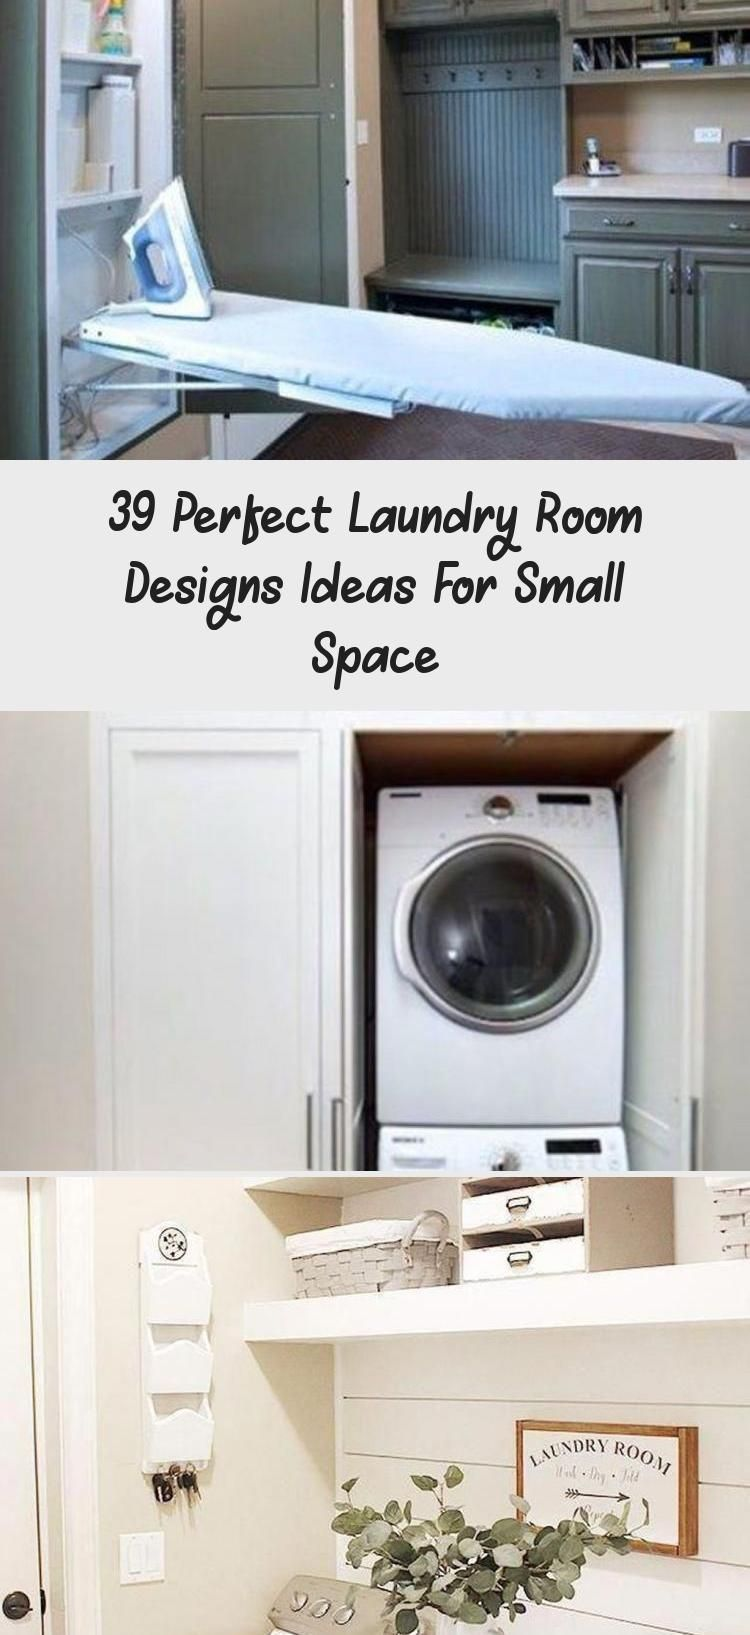 awesome 39 perfect laundry room designs ideas for small on extraordinary small laundry room design and decorating ideas modest laundry space id=15829